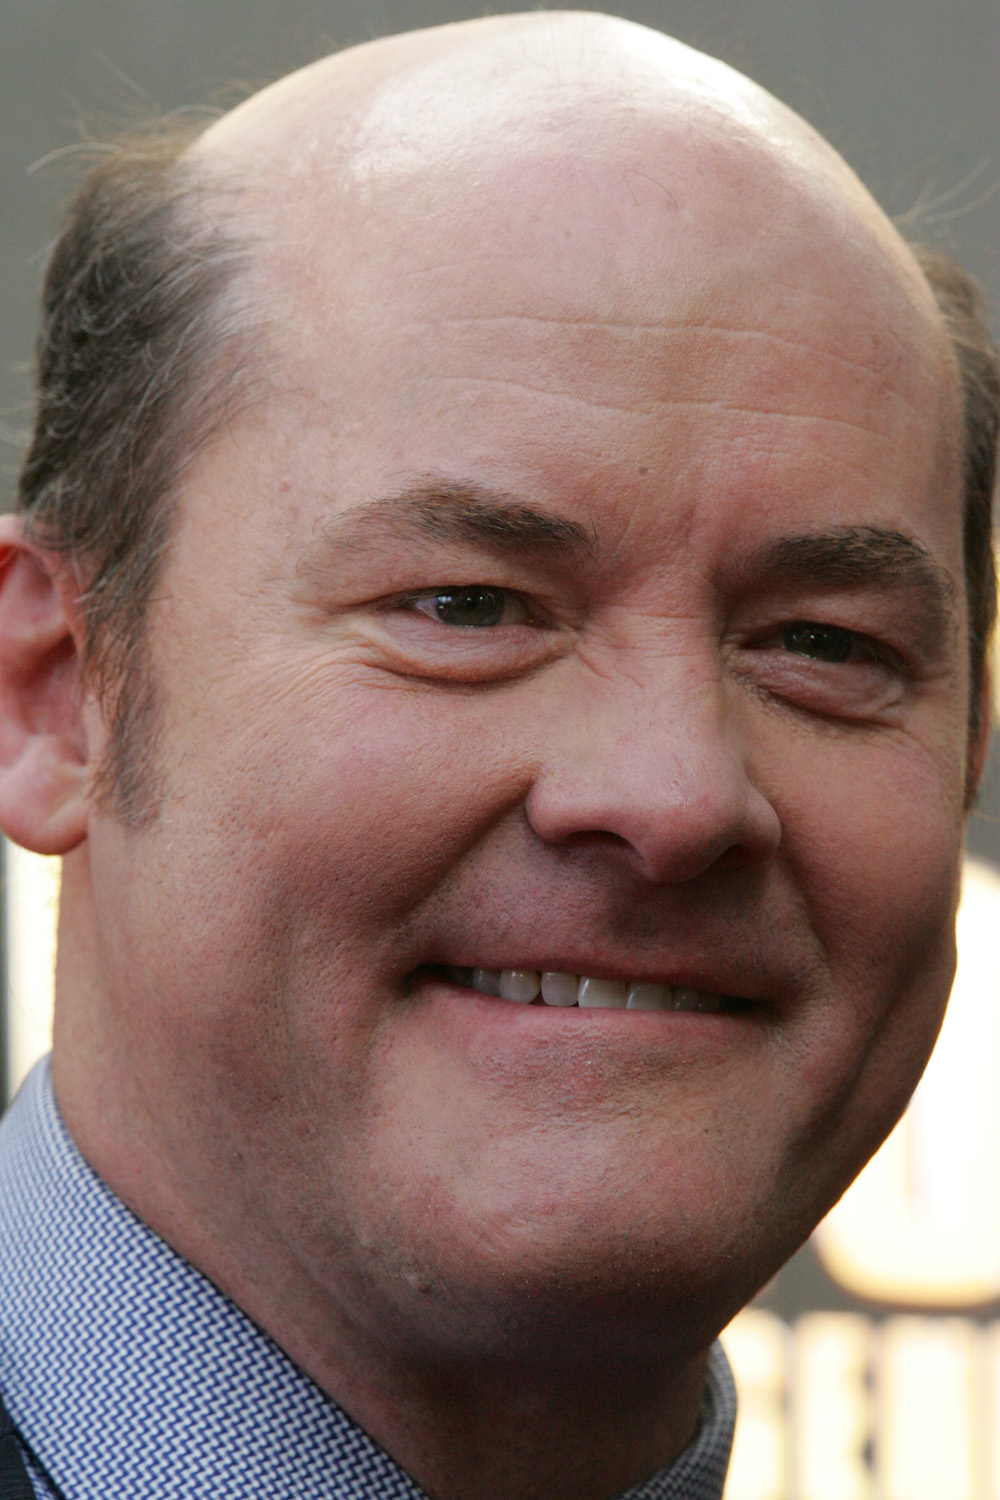 The 56-year old son of father (?) and mother(?) David Koechner in 2019 photo. David Koechner earned a  million dollar salary - leaving the net worth at 5 million in 2019